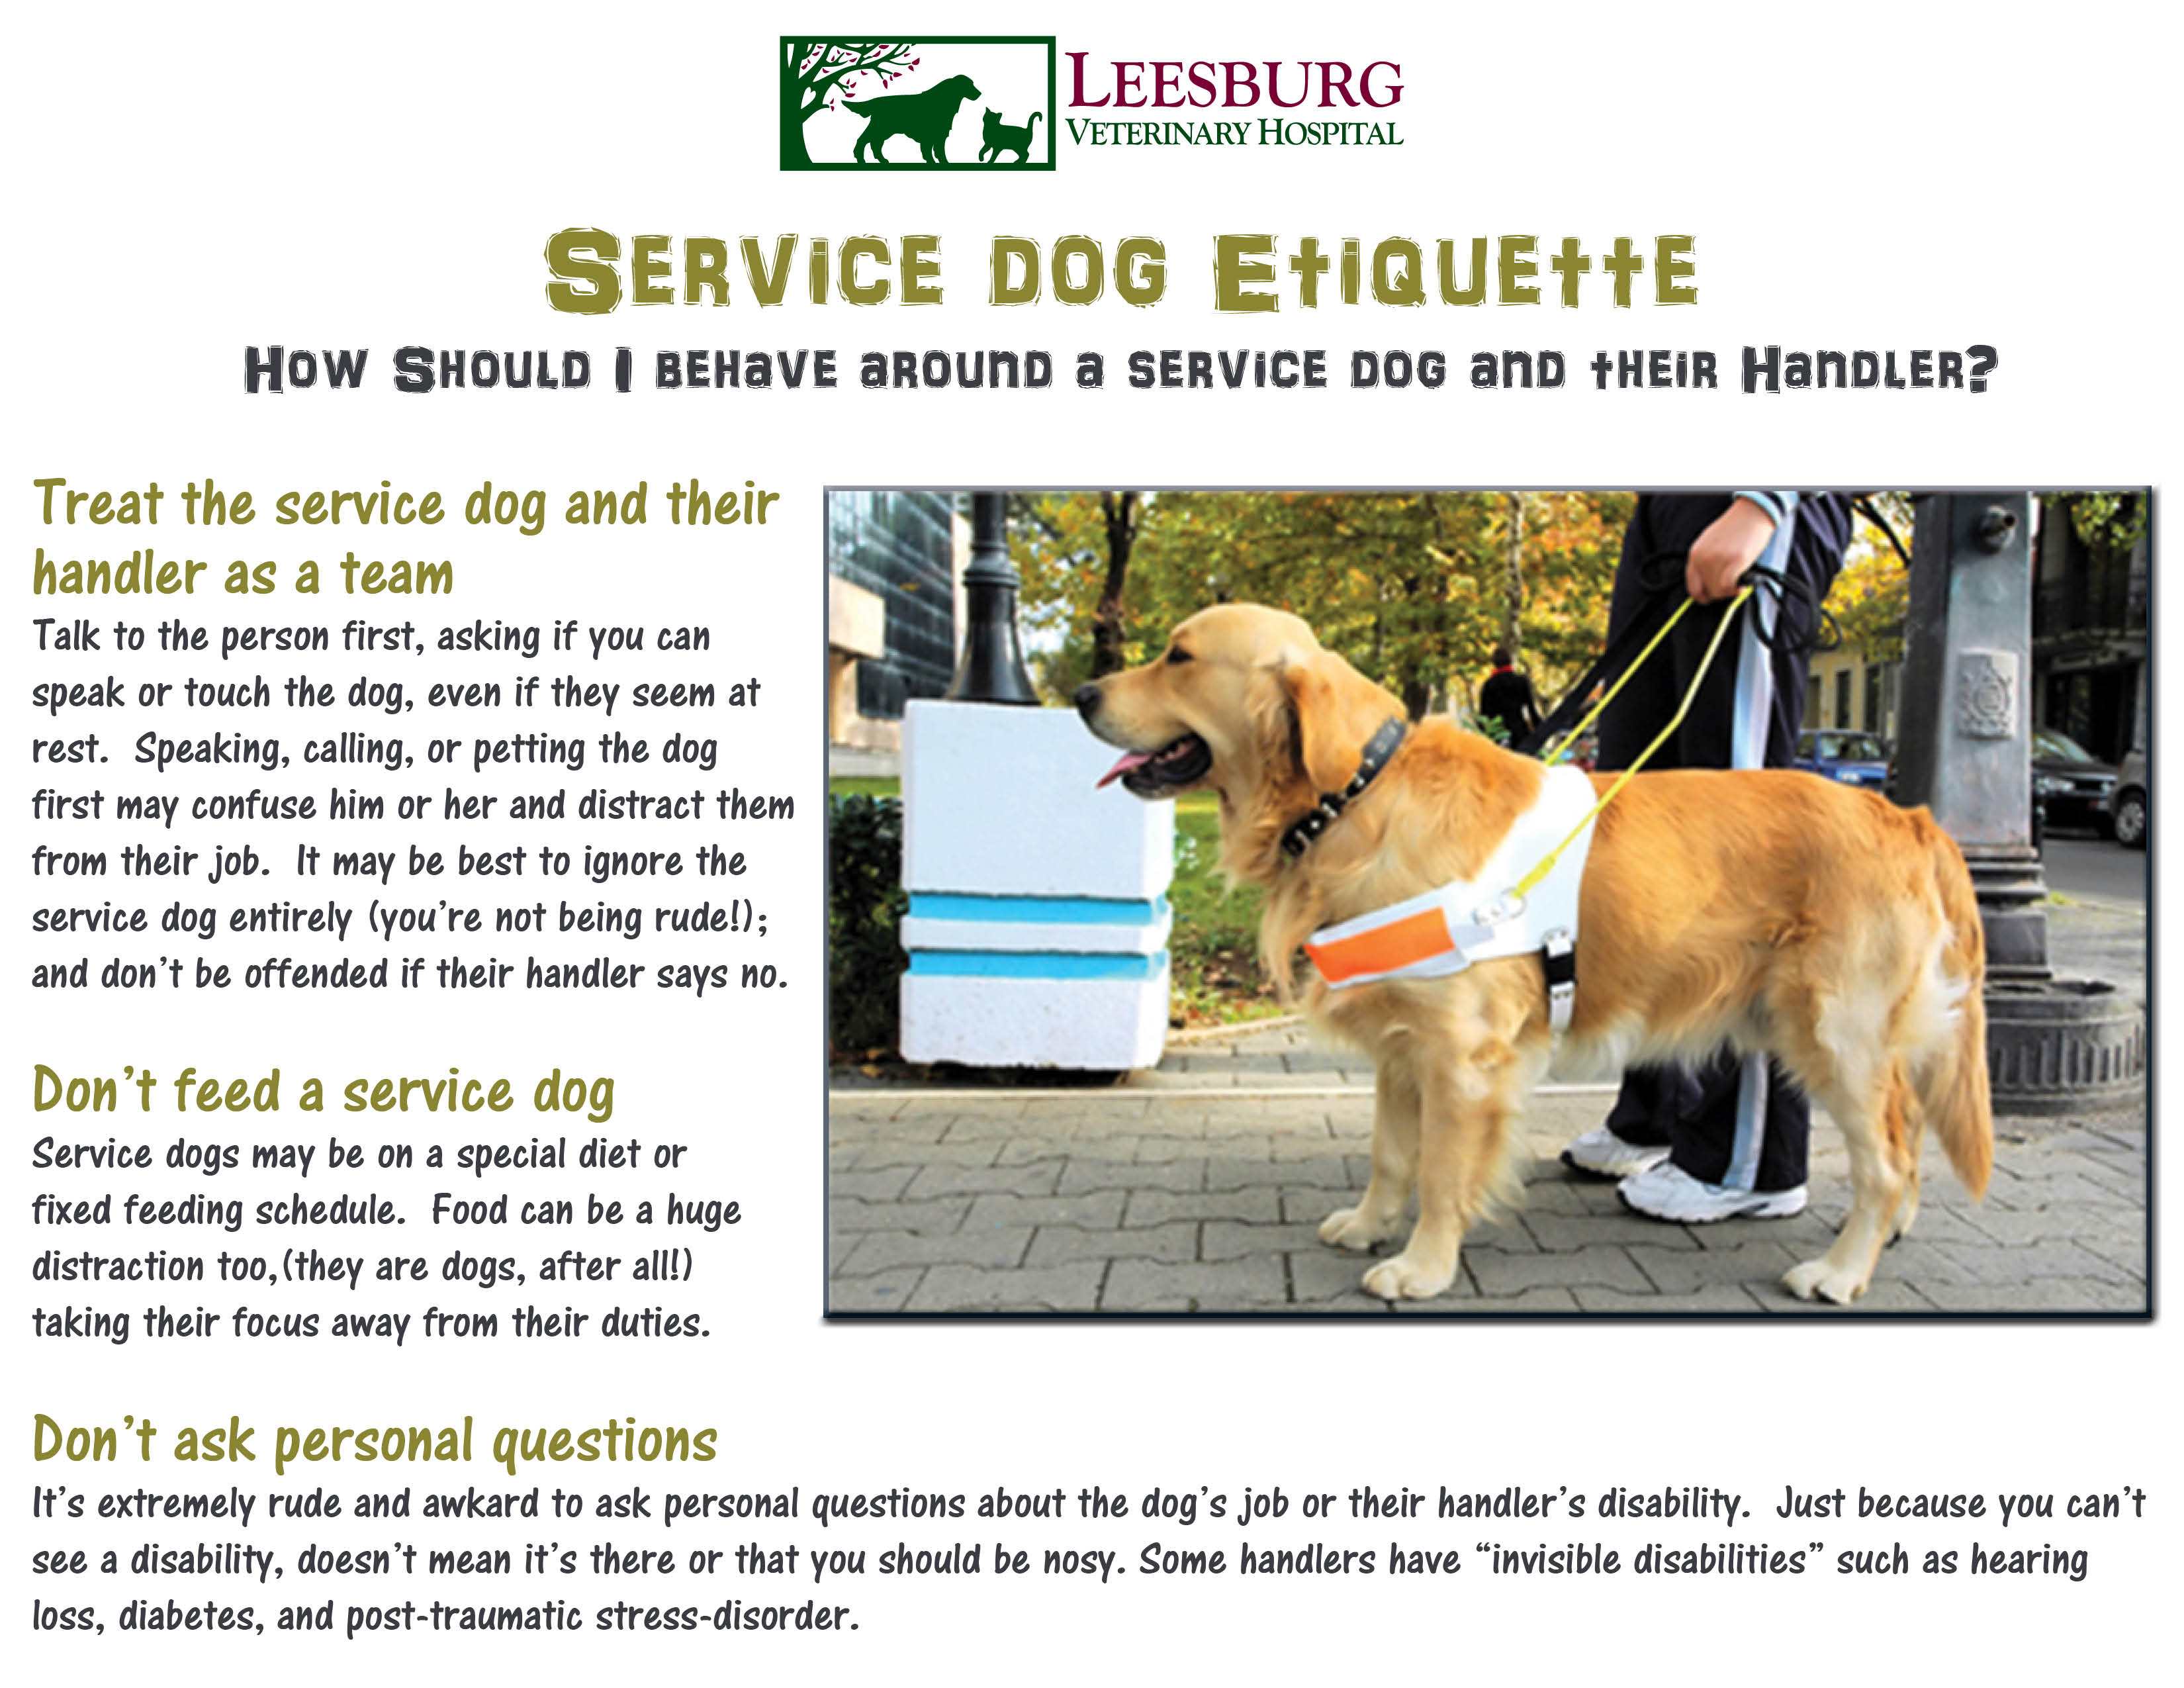 service animals A service animal must be specifically trained to perform a service function no national standards for certification or licensure of service animals service animals whose behavior poses a direct threat to the health or safety of others, or is disruptive to the campus community, may be excluded regardless of training or certification.